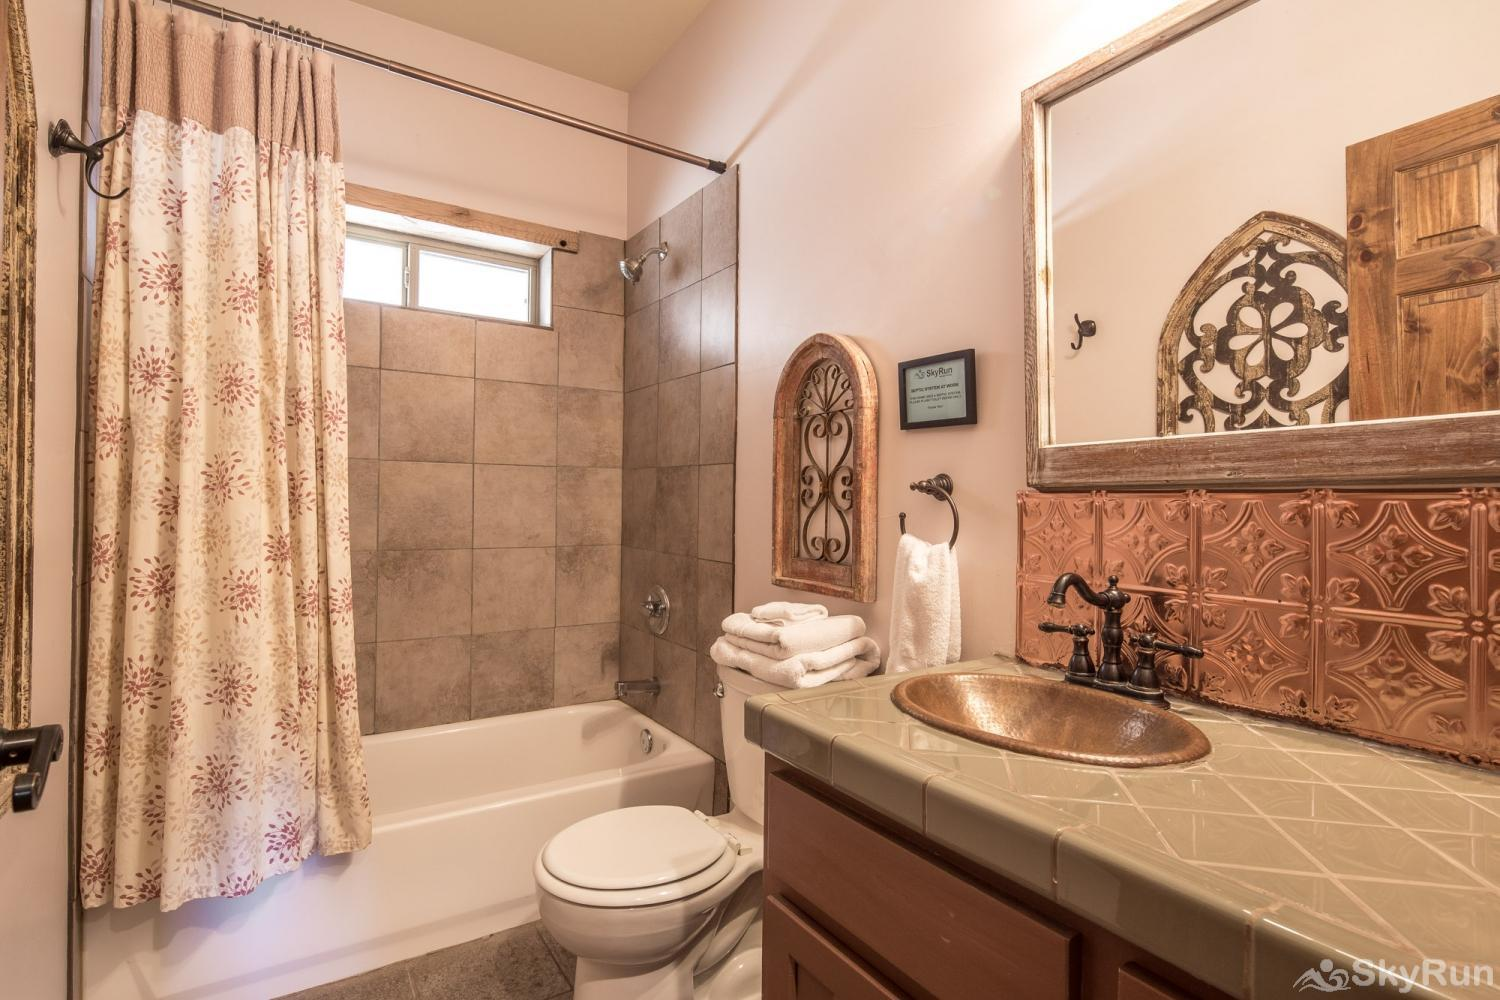 SHEPHERD'S LODGE Full bath downstairs with shower/ tub combo